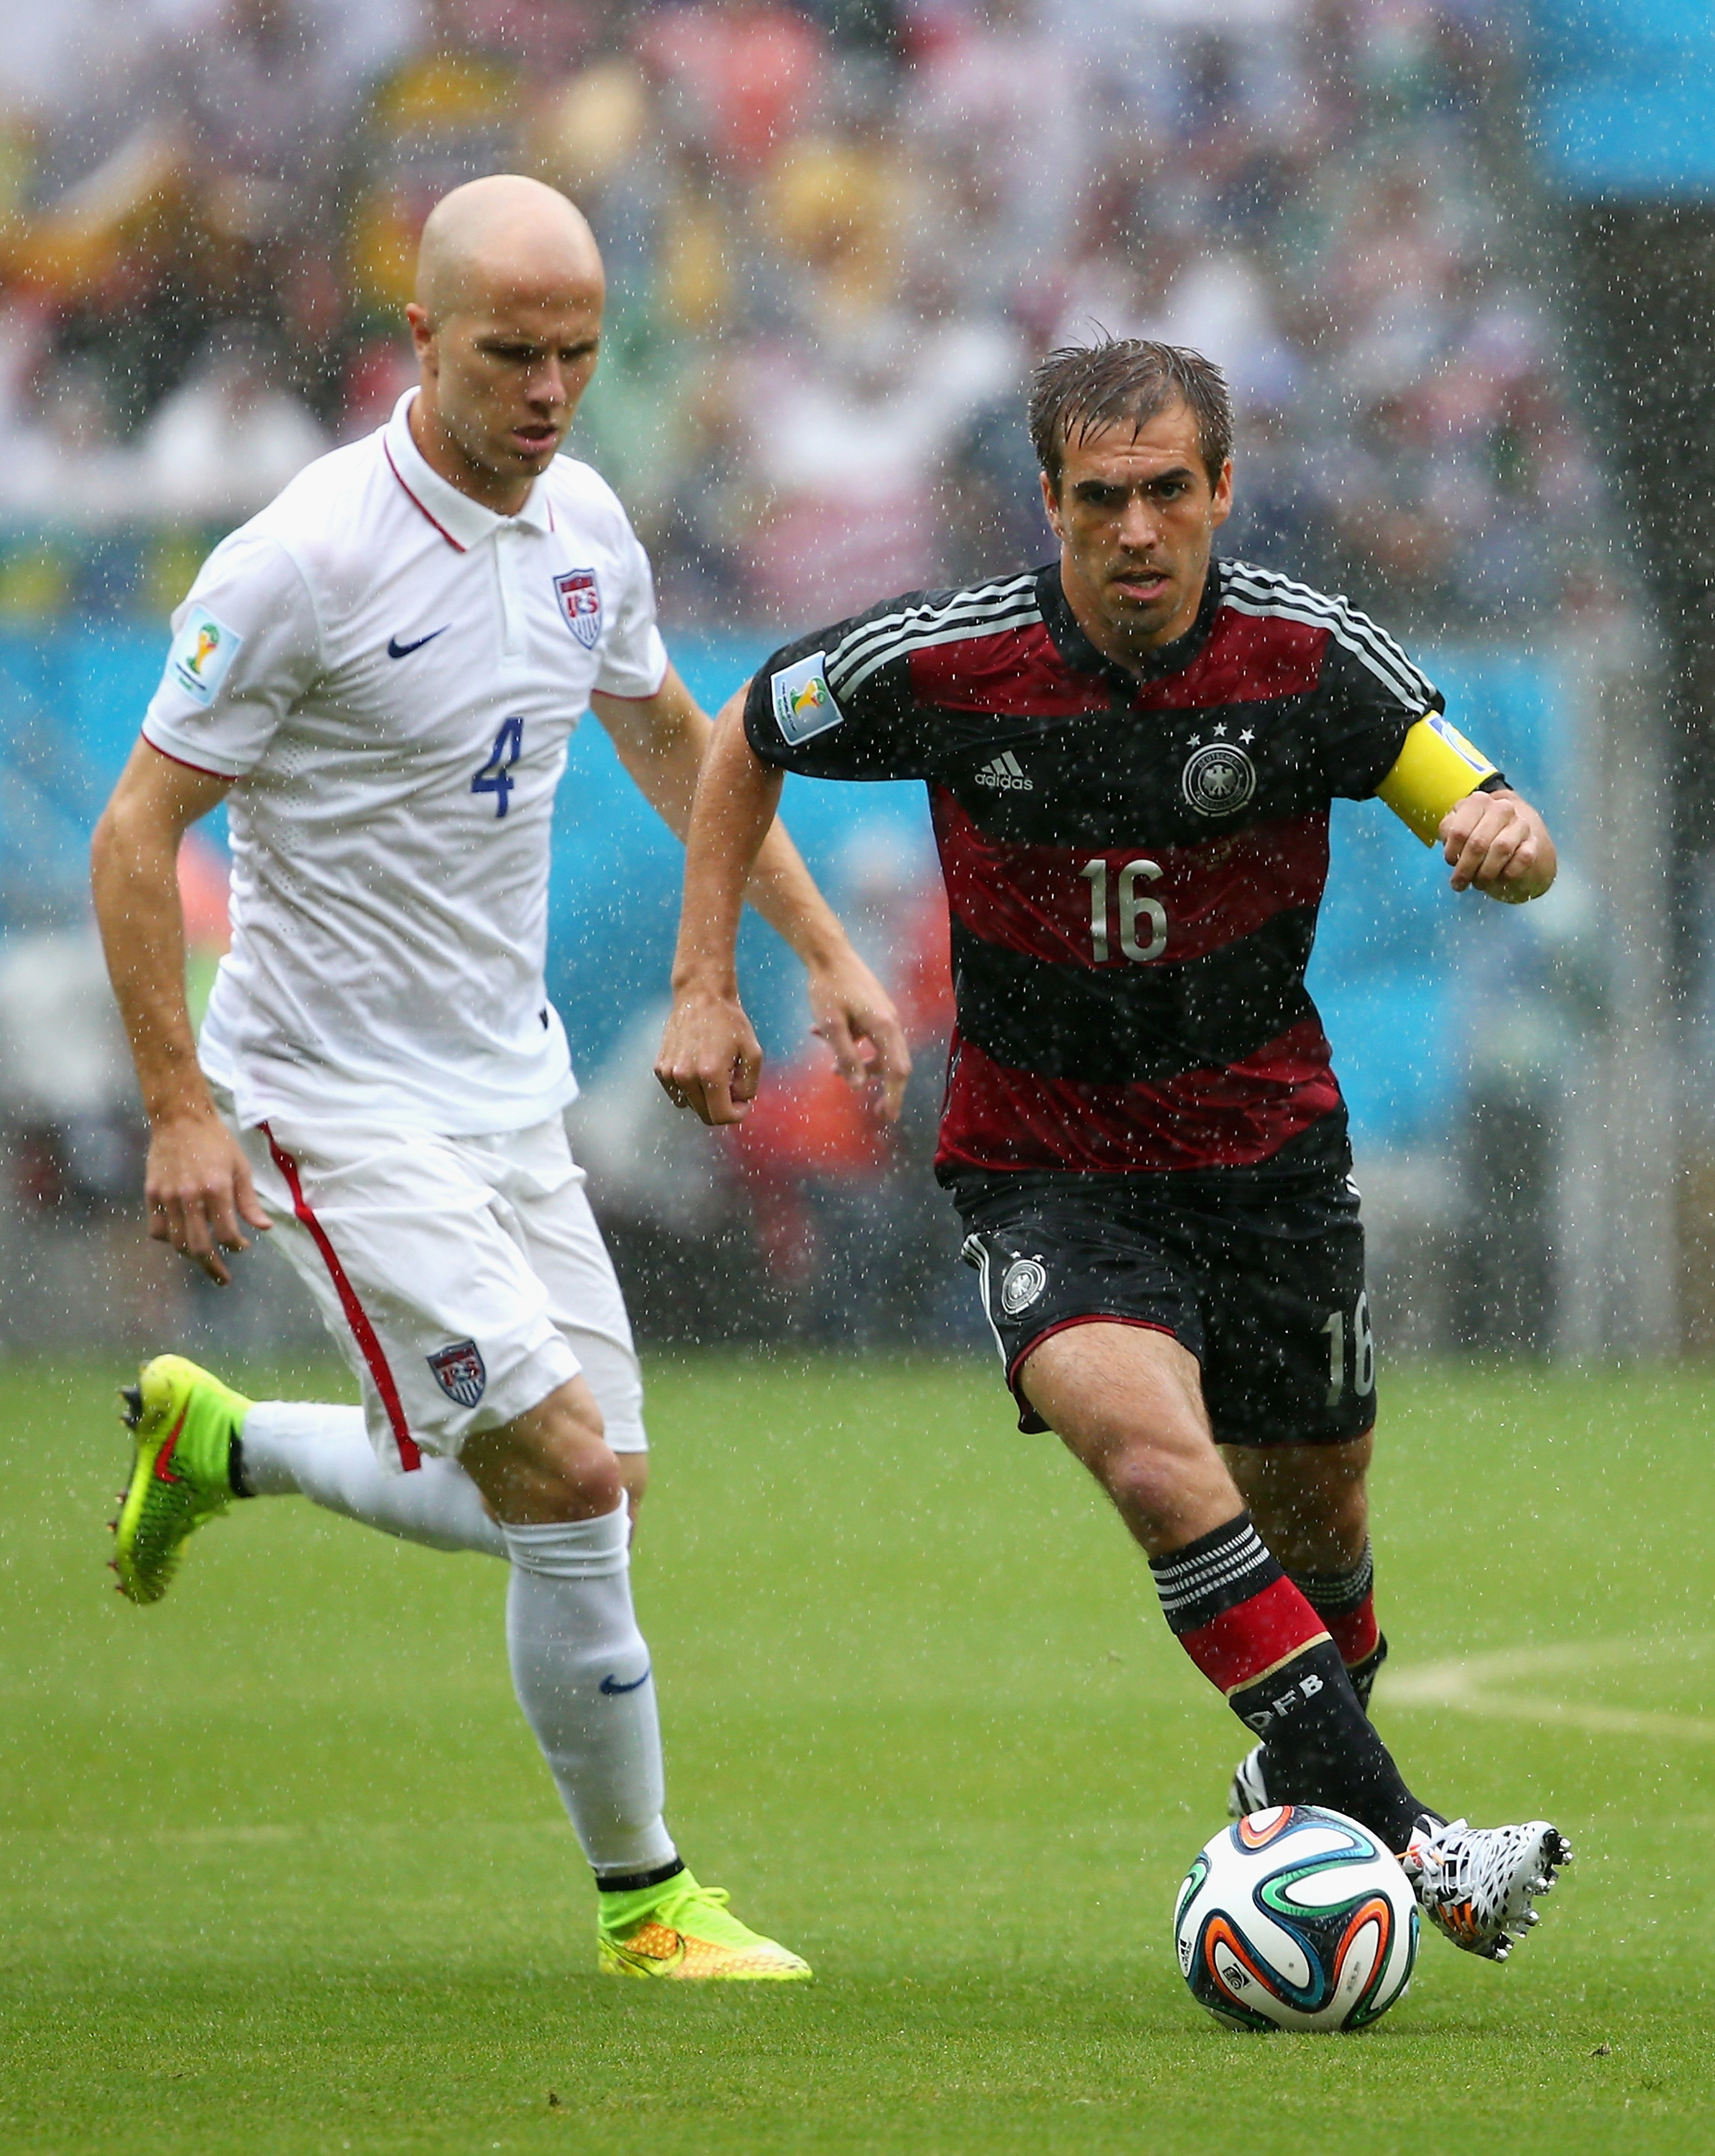 soccer world cup - photo #35